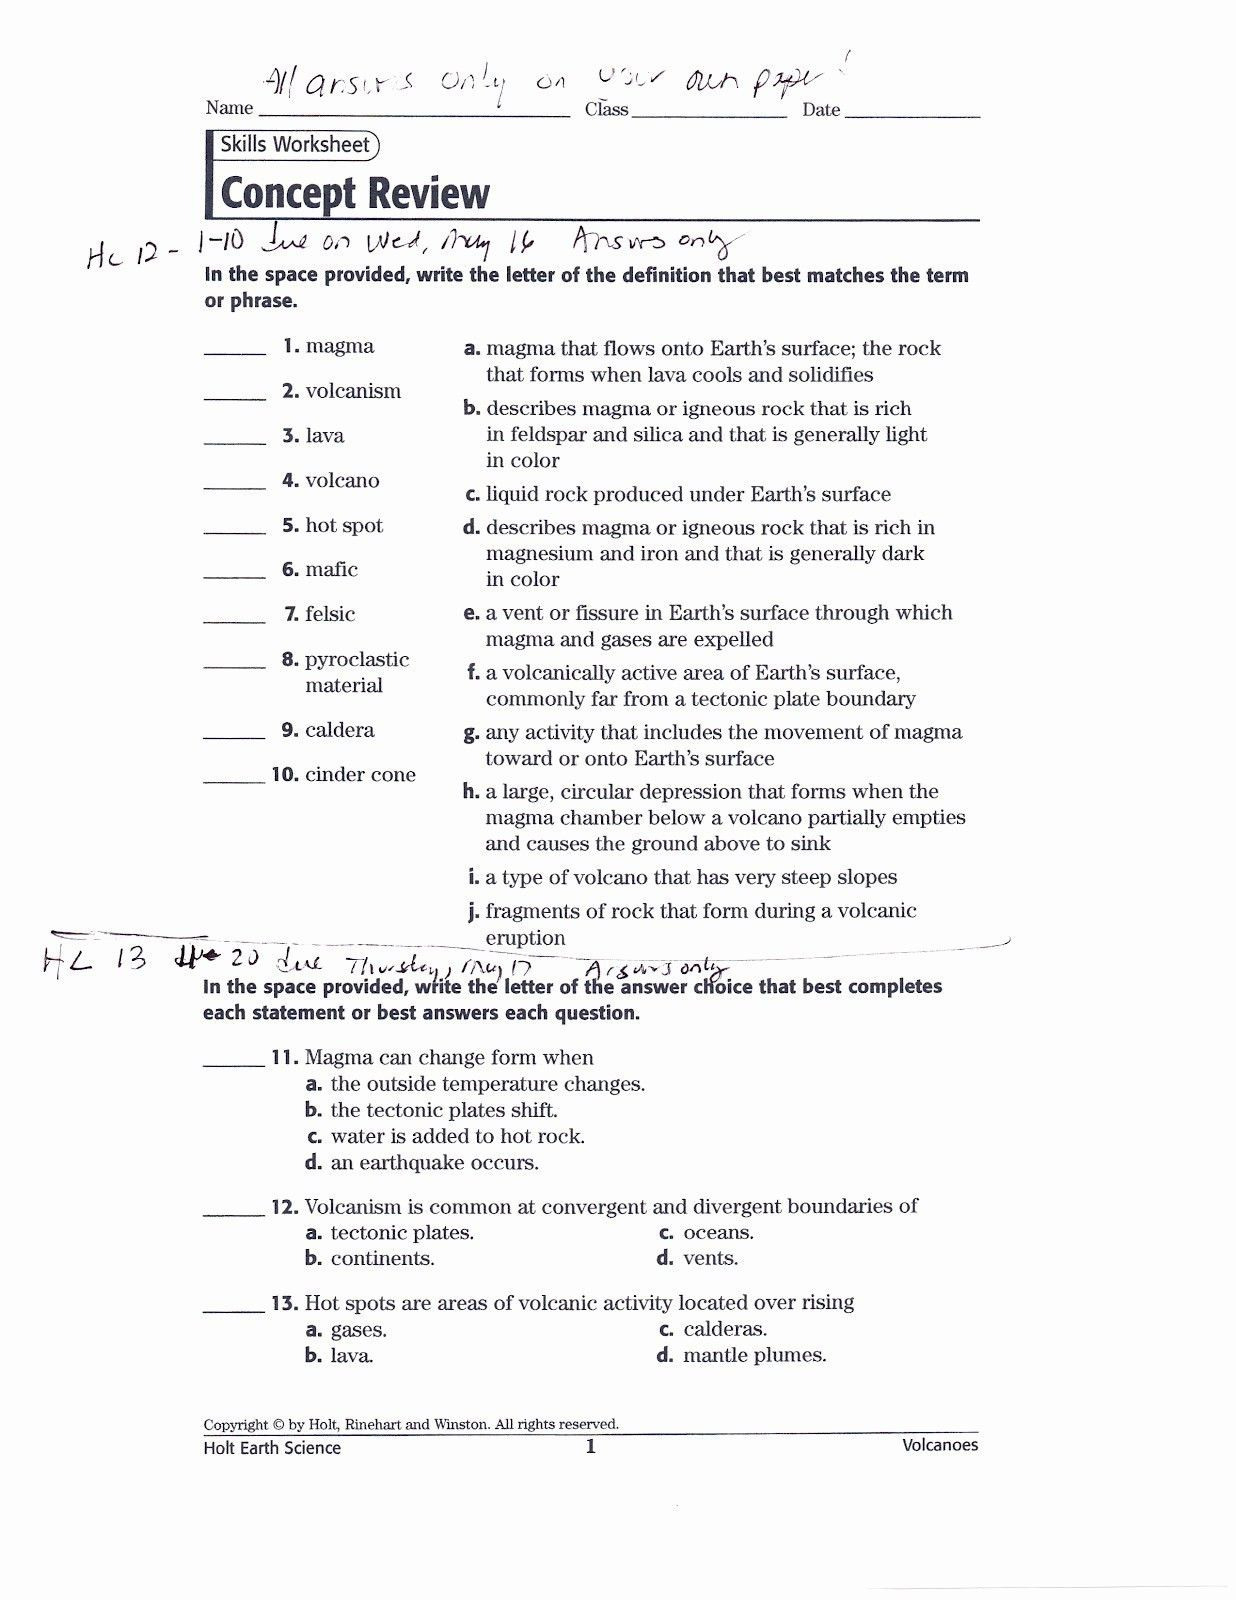 Skills Worksheet Concept Review Answers